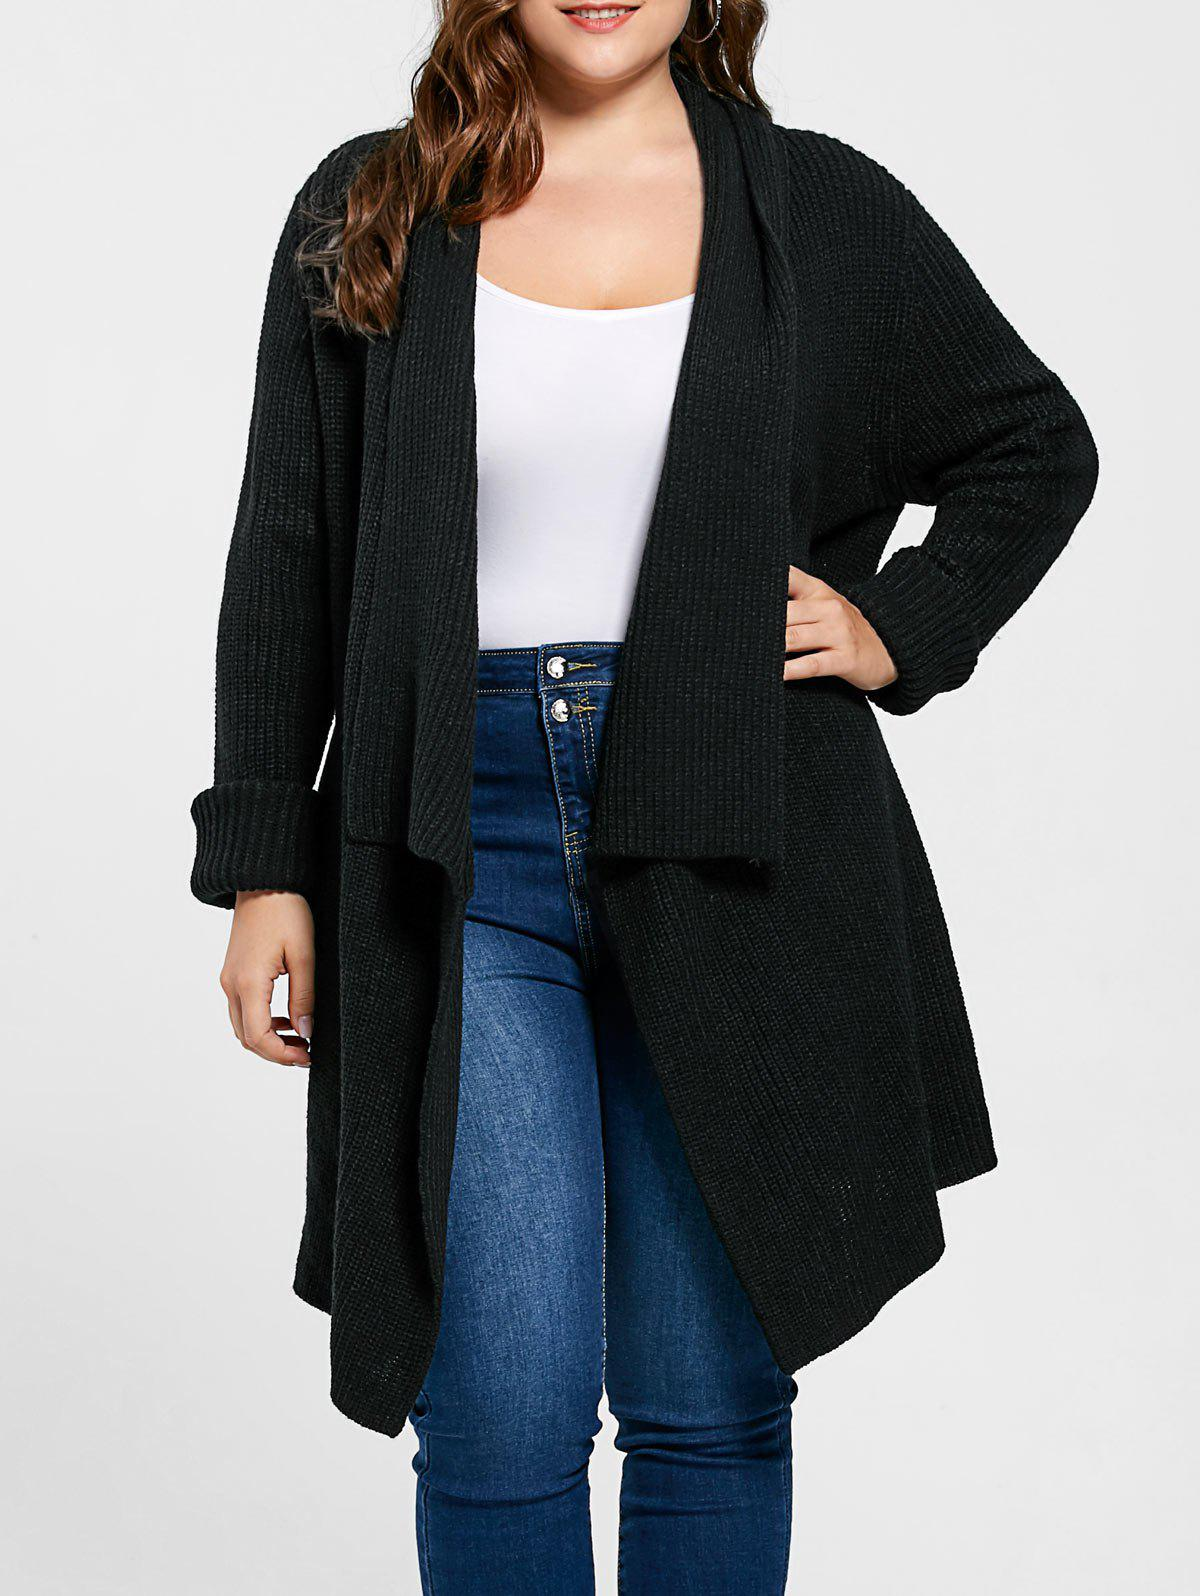 Plus Size Longline Ribbed Drape CardiganWOMEN<br><br>Size: 2XL; Color: BLACK; Type: Cardigans; Material: Acrylic; Sleeve Length: Full; Collar: Turn-down Collar; Style: Casual; Season: Fall,Spring; Pattern Type: Solid; Weight: 0.5000kg; Package Contents: 1 x Cardigan;